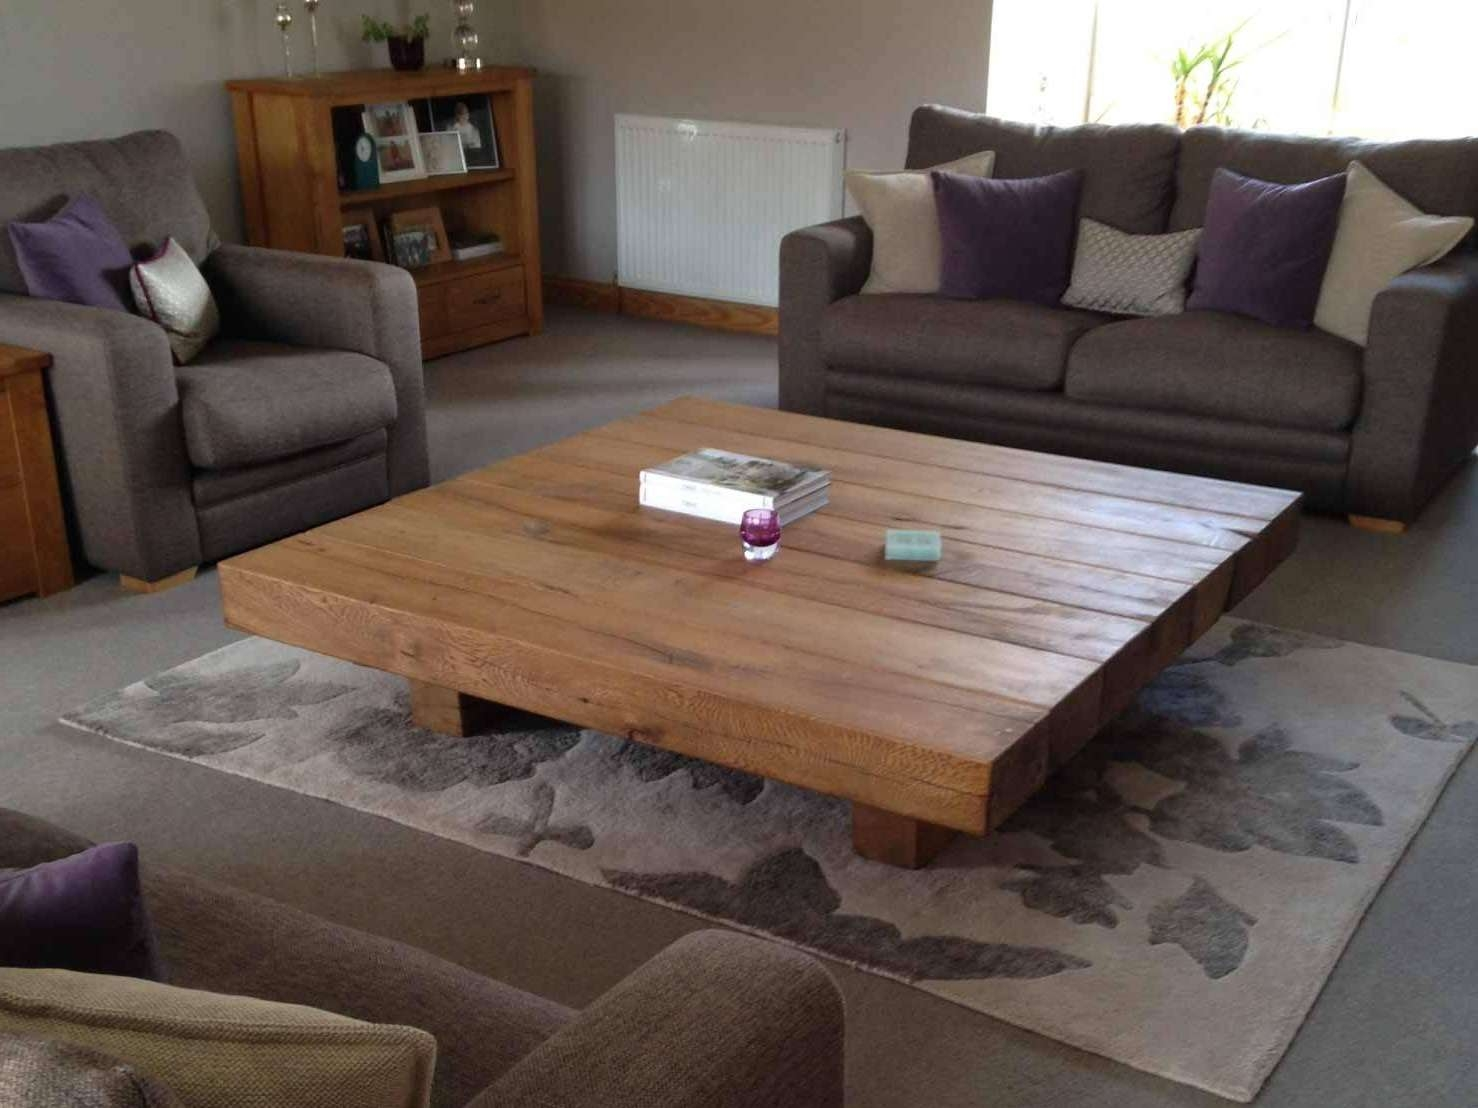 Most Recently Released Low Coffee Tables Regarding Coffee Table : Stunning Low Coffee Tables Image Inspirations (View 13 of 20)